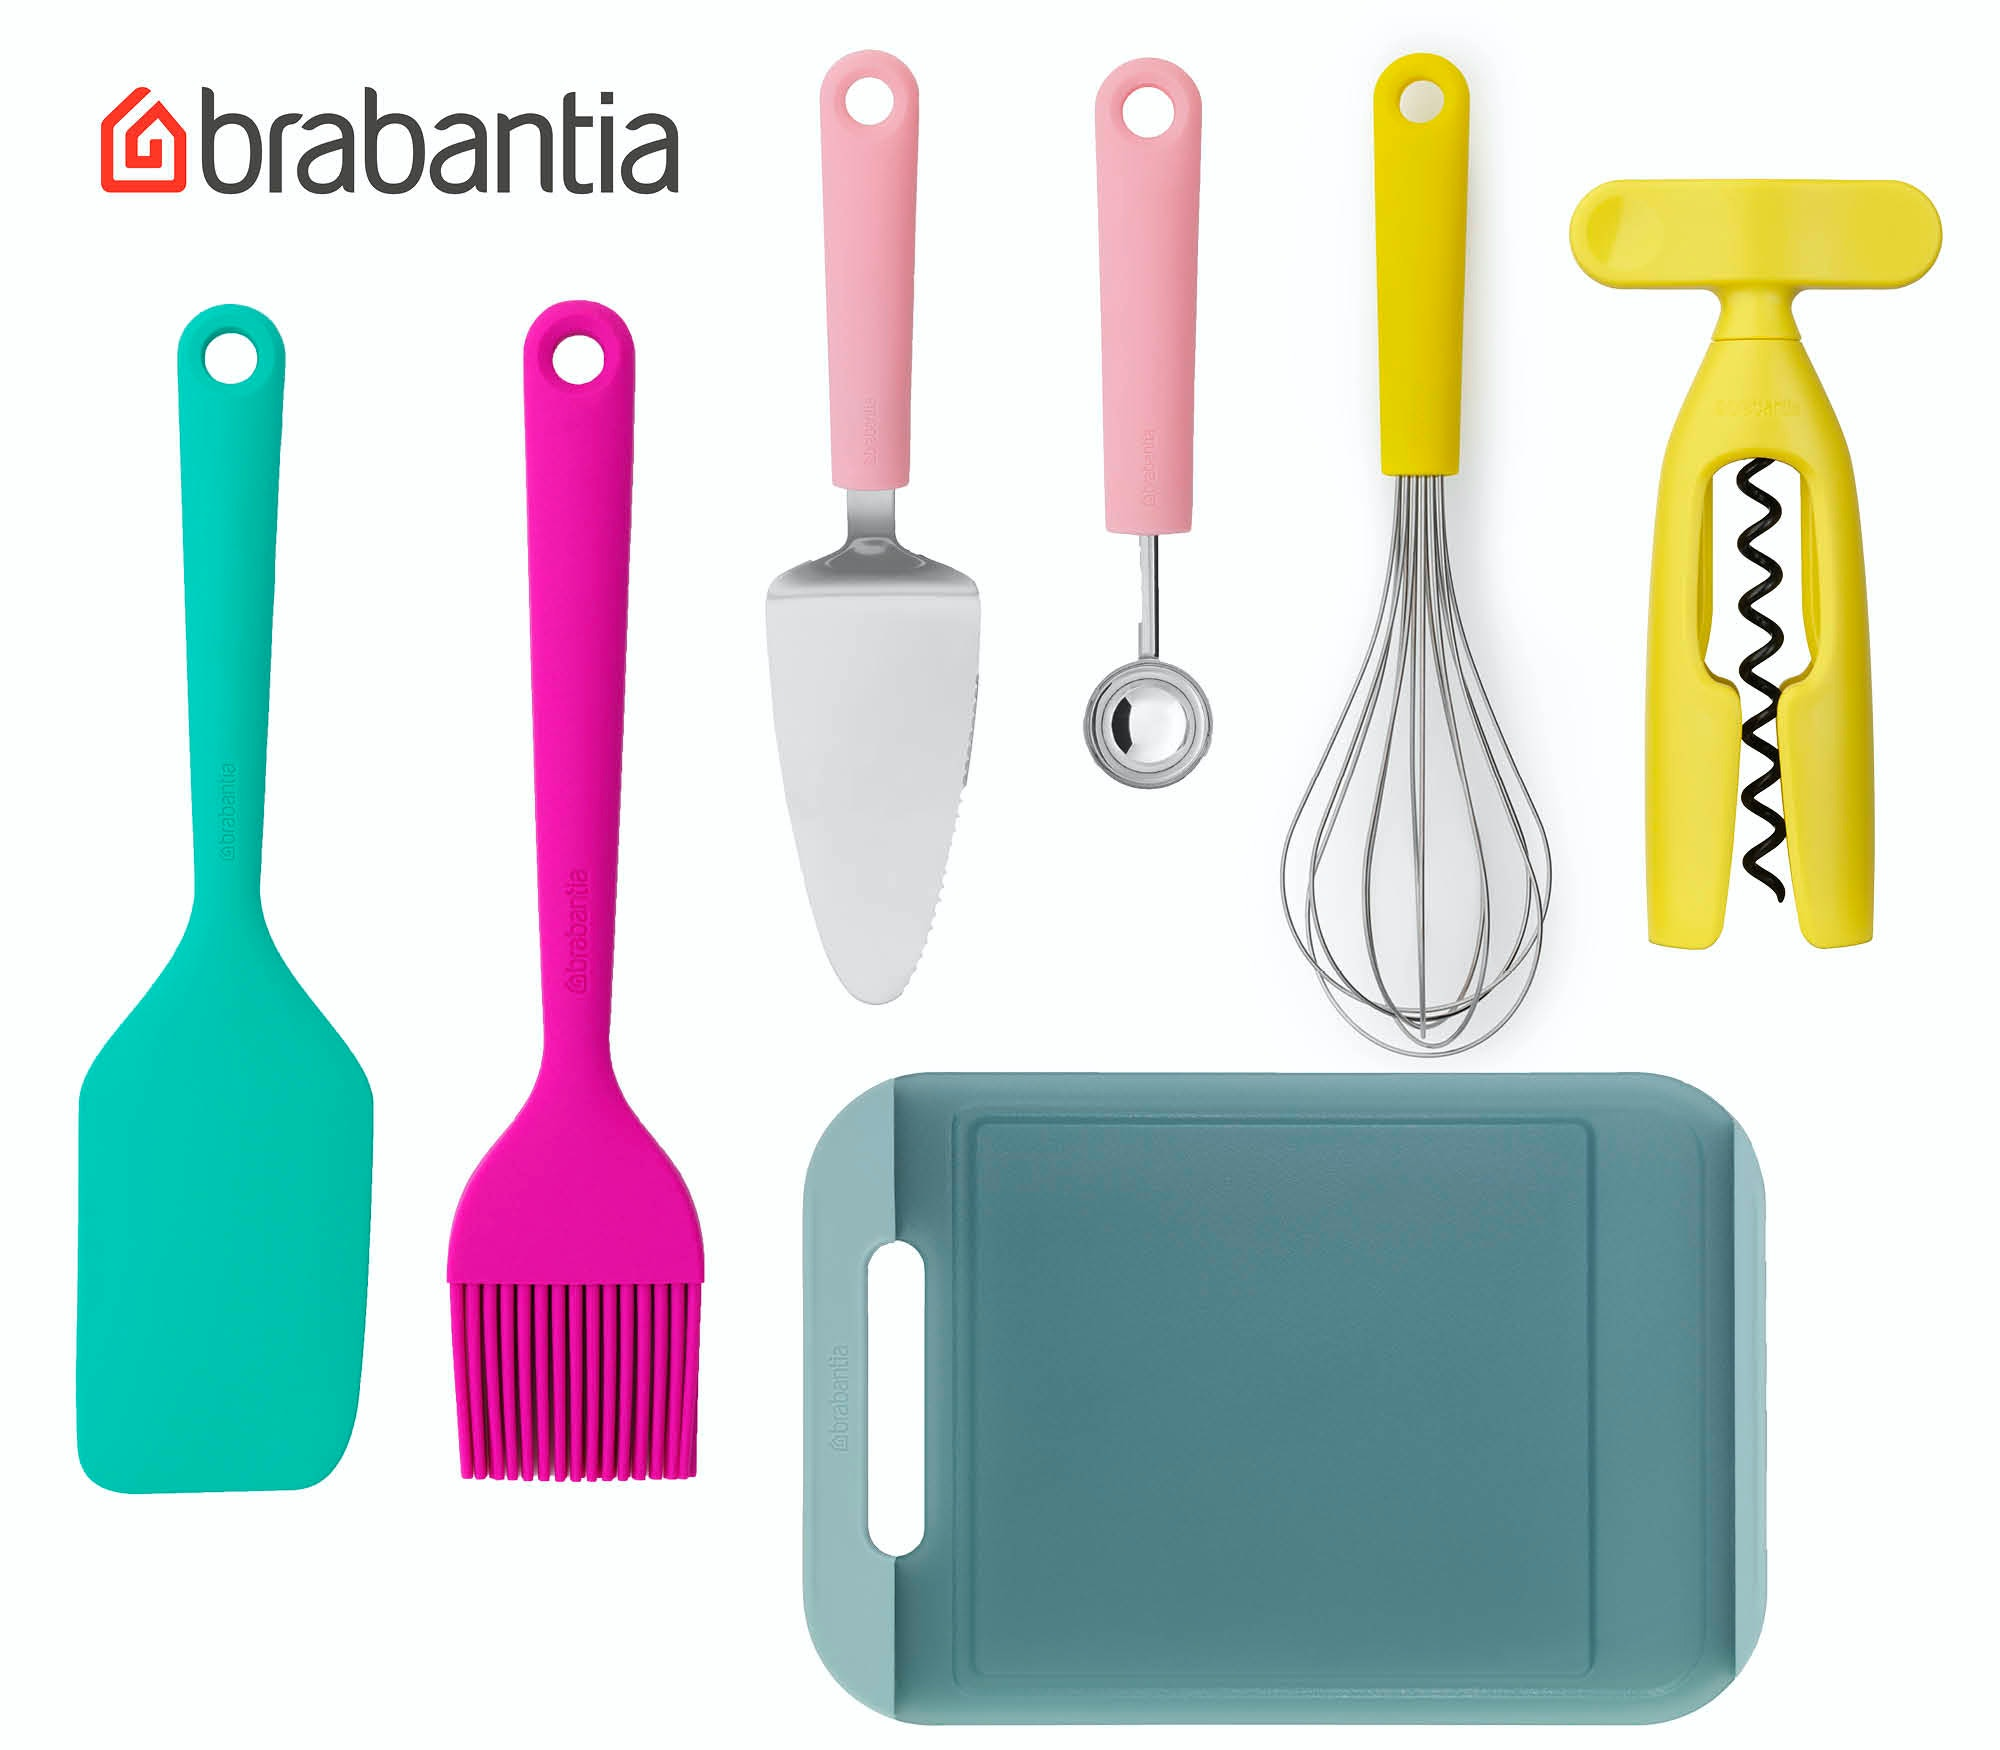 Brabantia Tasty Colours baking bundles  sweepstakes